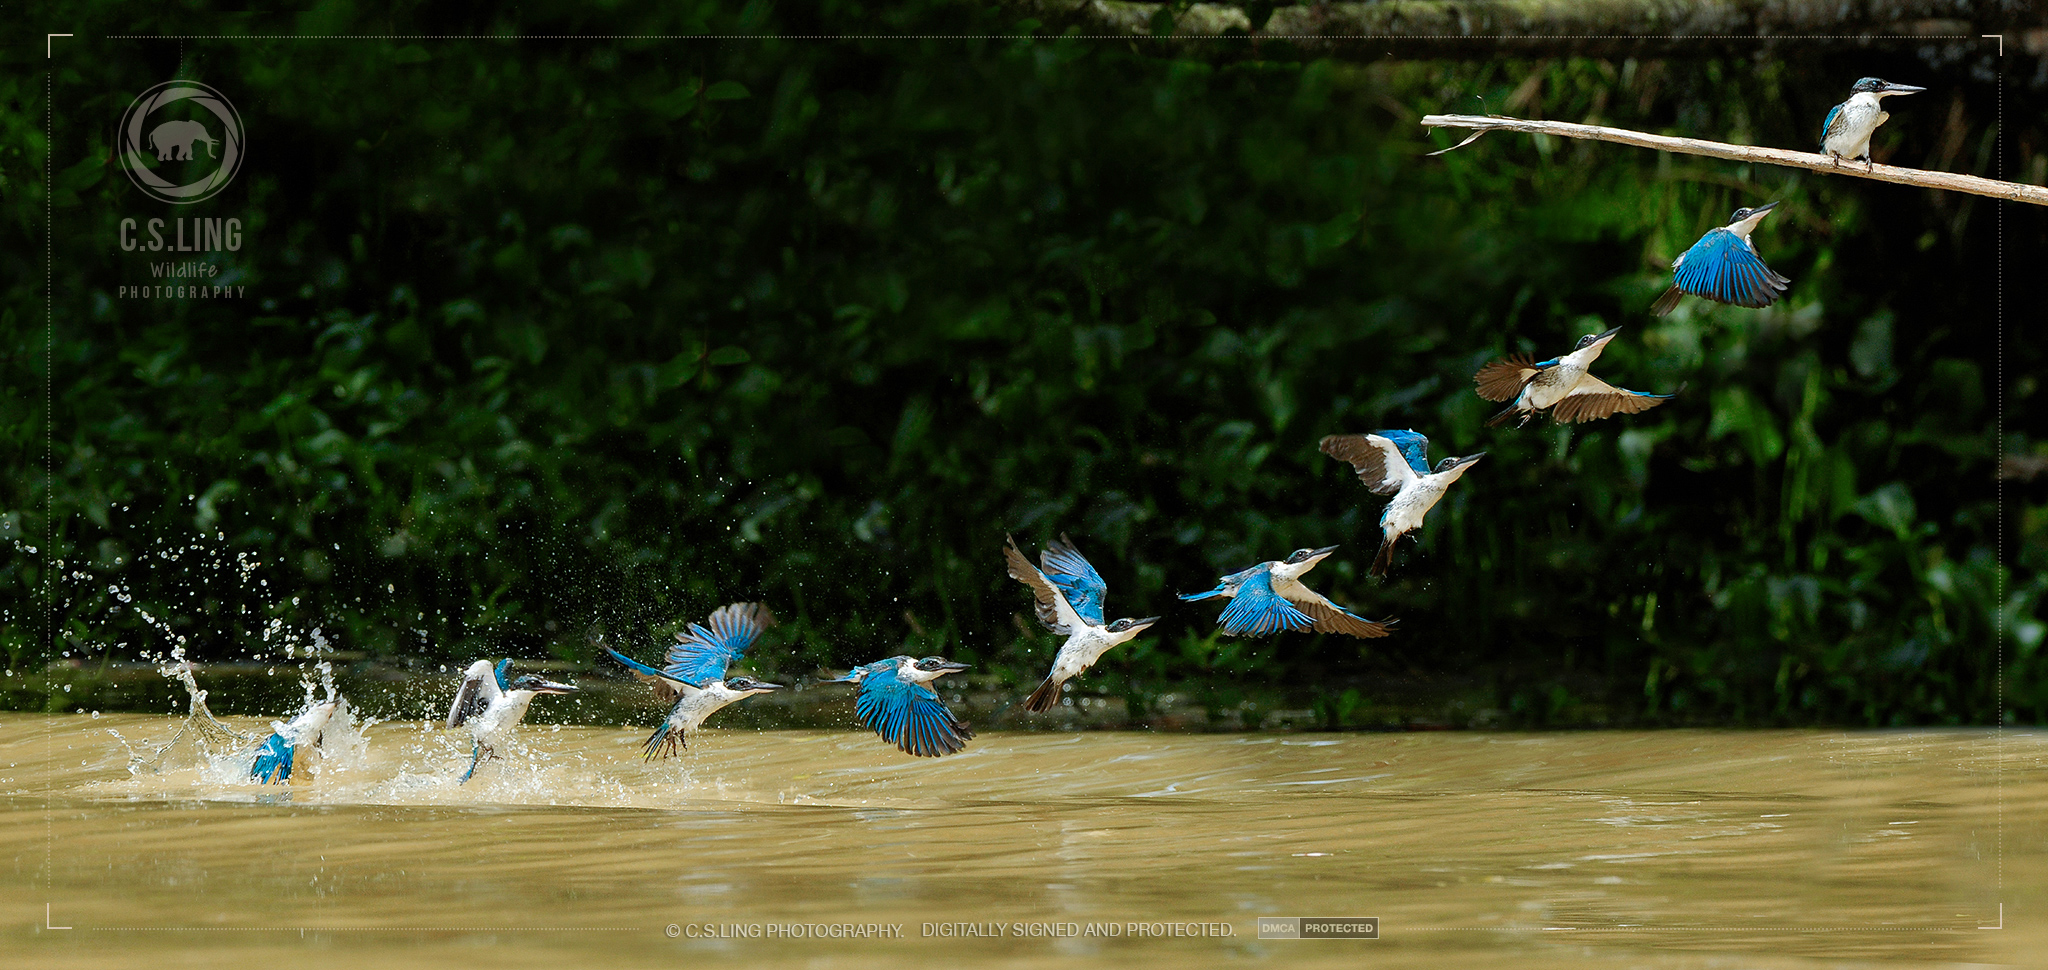 Collared Kingfisher Flight sequence | Top Wildlife Photographer